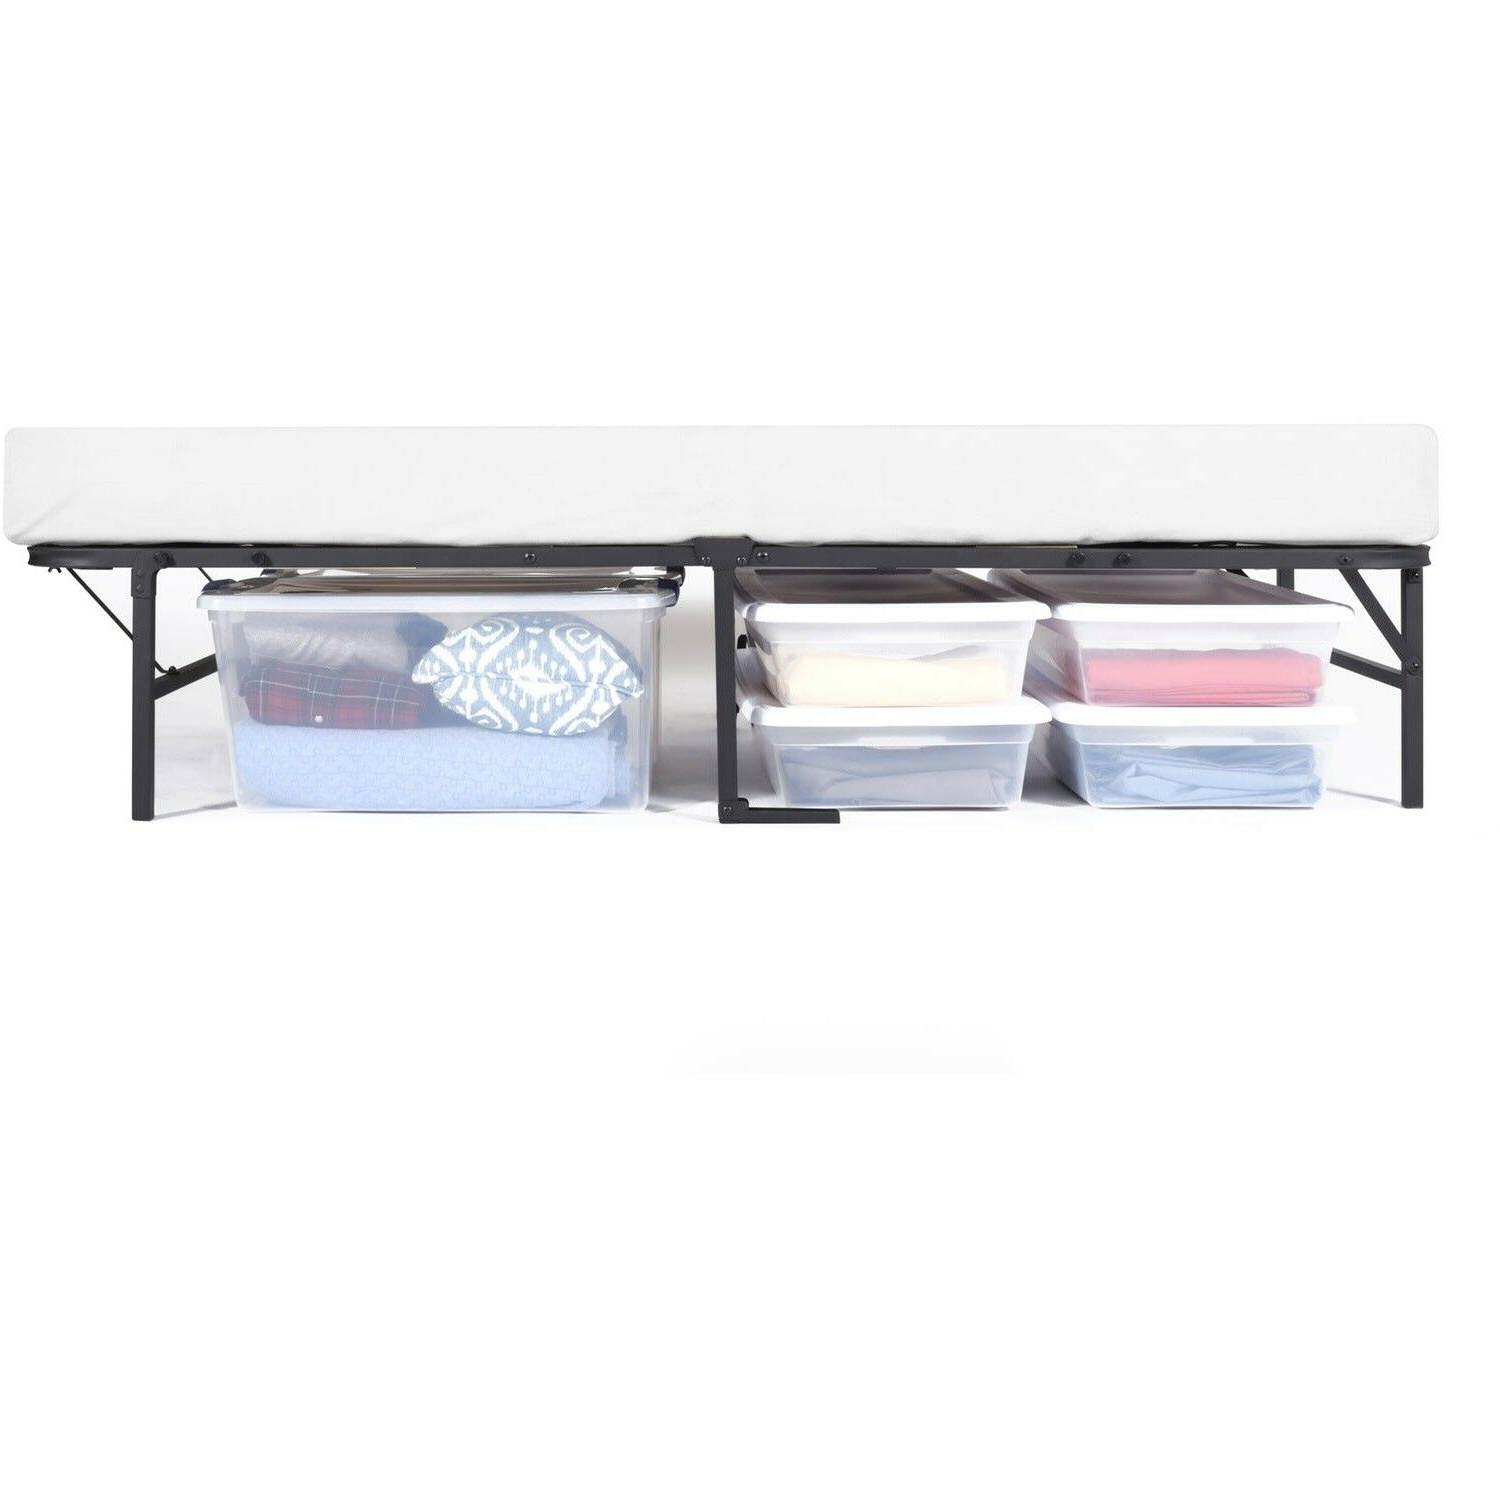 TWIN Size Frame Head Lift Furniture Foundation